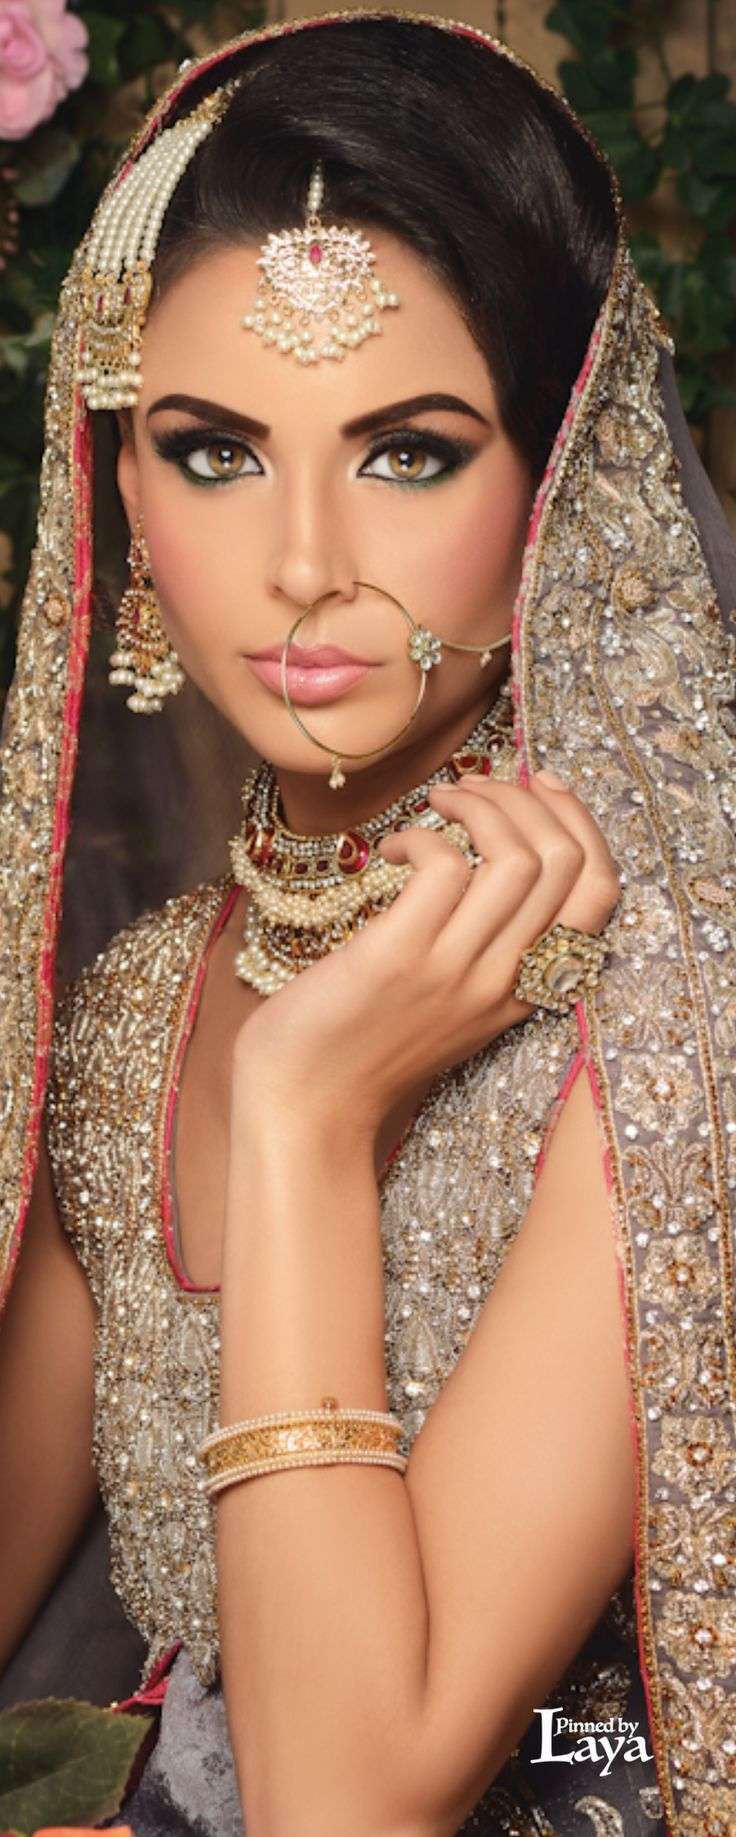 Worst makeup mistakes on your wedding indian bridal diaries - Indian Bridal Make Up Book Your Specialty Artist For Your Wedding Today At